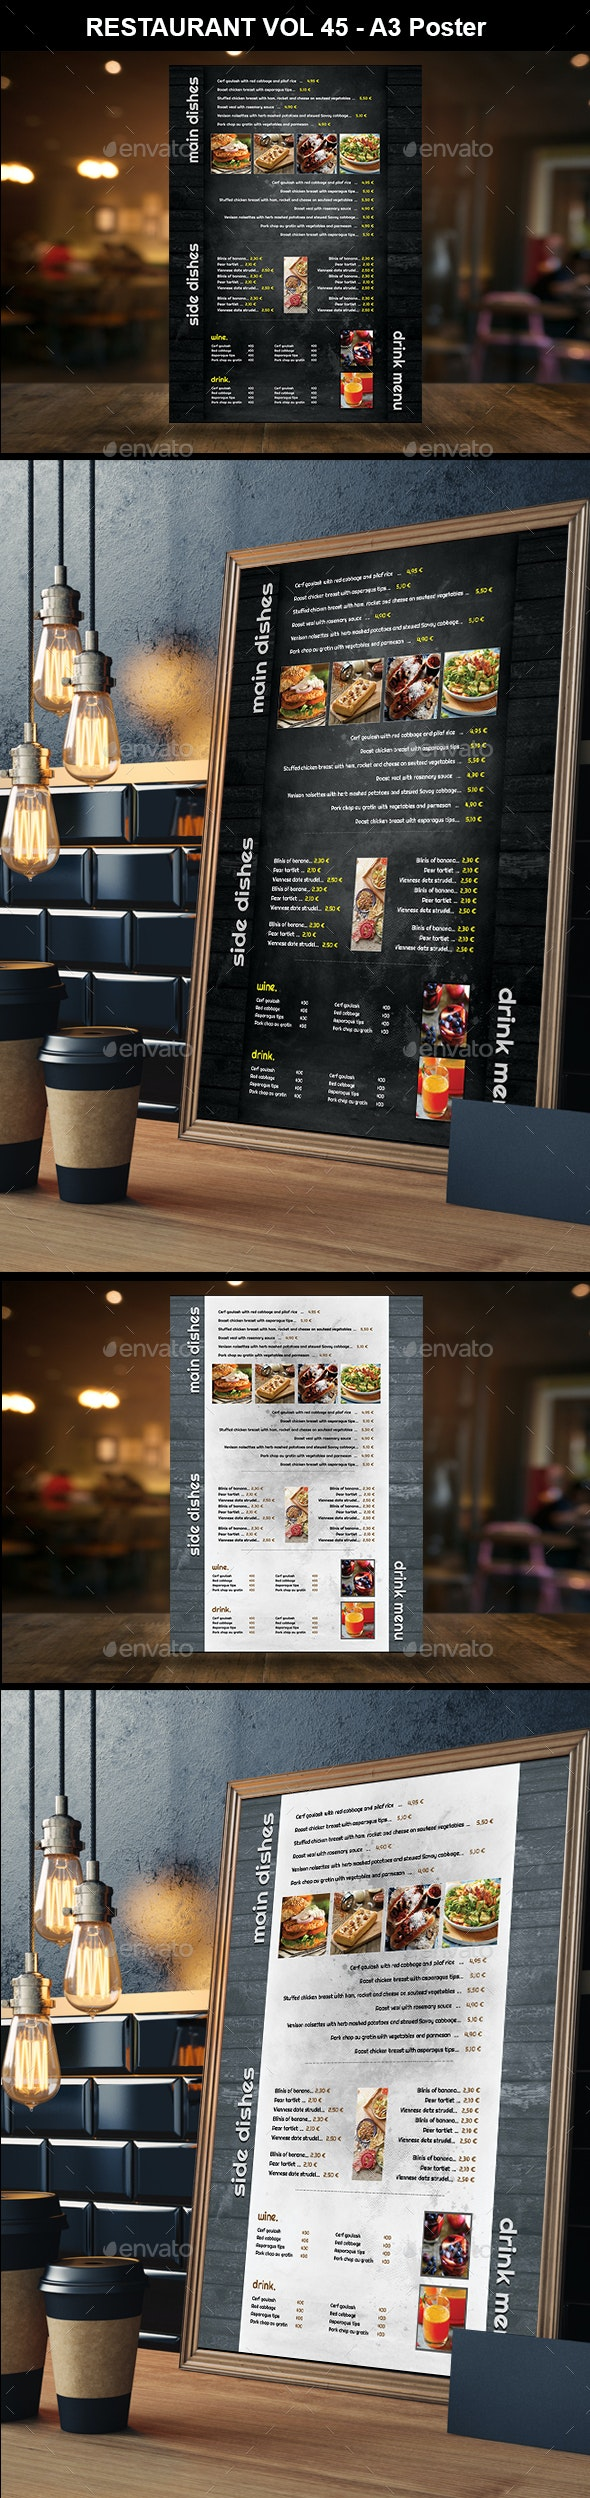 Restaurant A3 Poster Vol 33 - Food Menus Print Templates